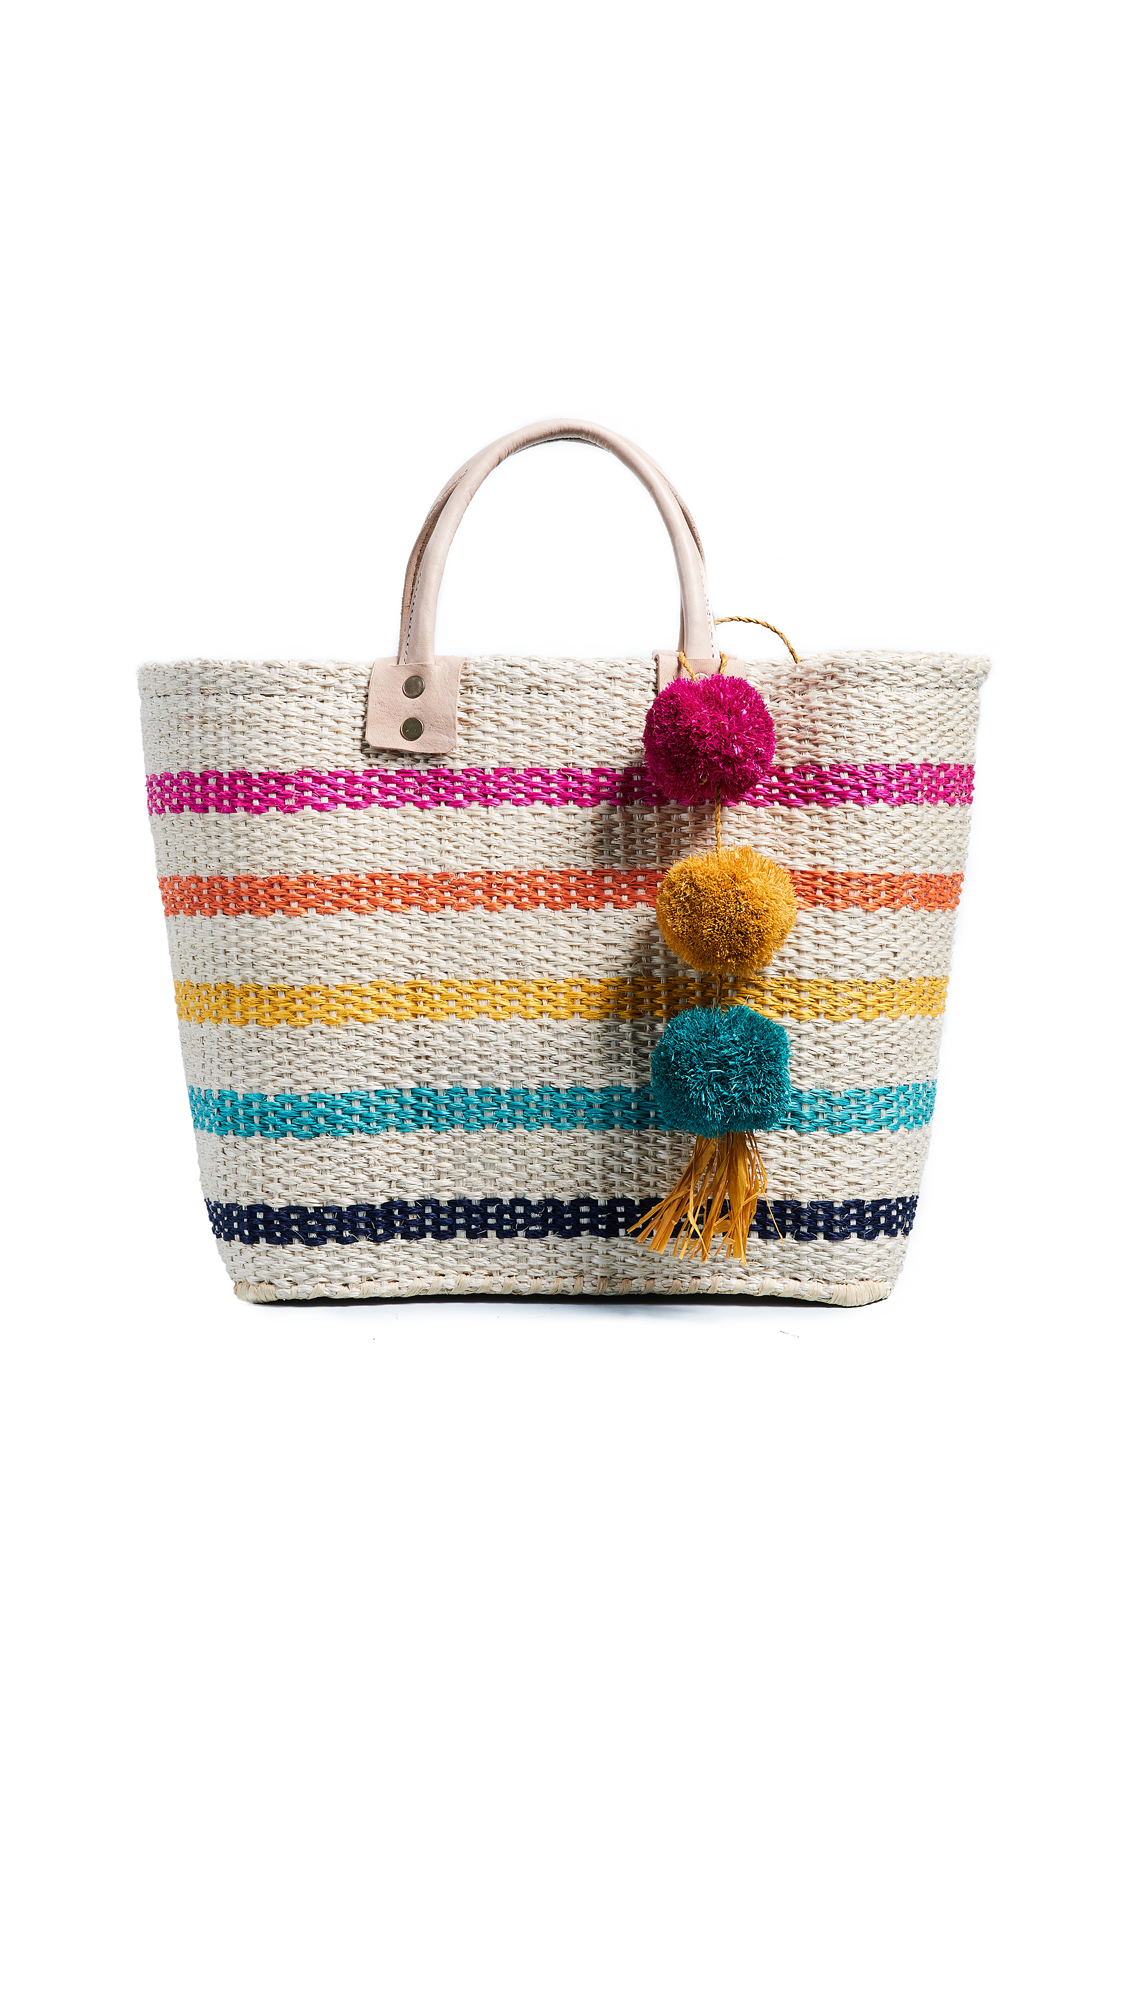 woven-bags-and-accessories-2018-pompom-tassels4